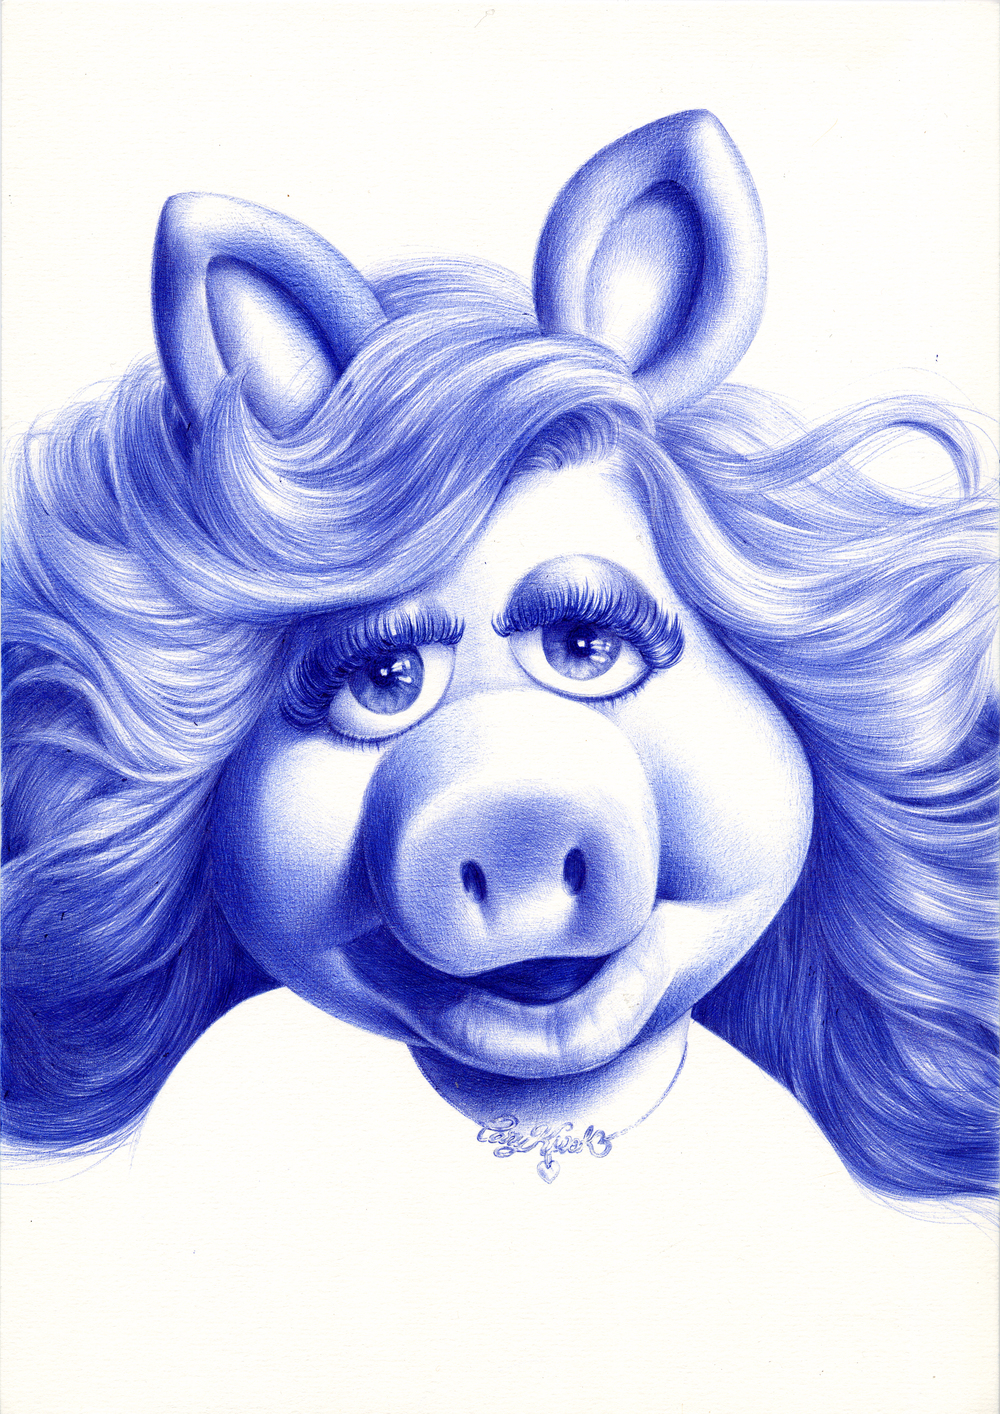 Hollywood - Miss Piggy (1970s) 2008 Ink on paper 29.7 x 21 cm / 11.7 x 8.3 in